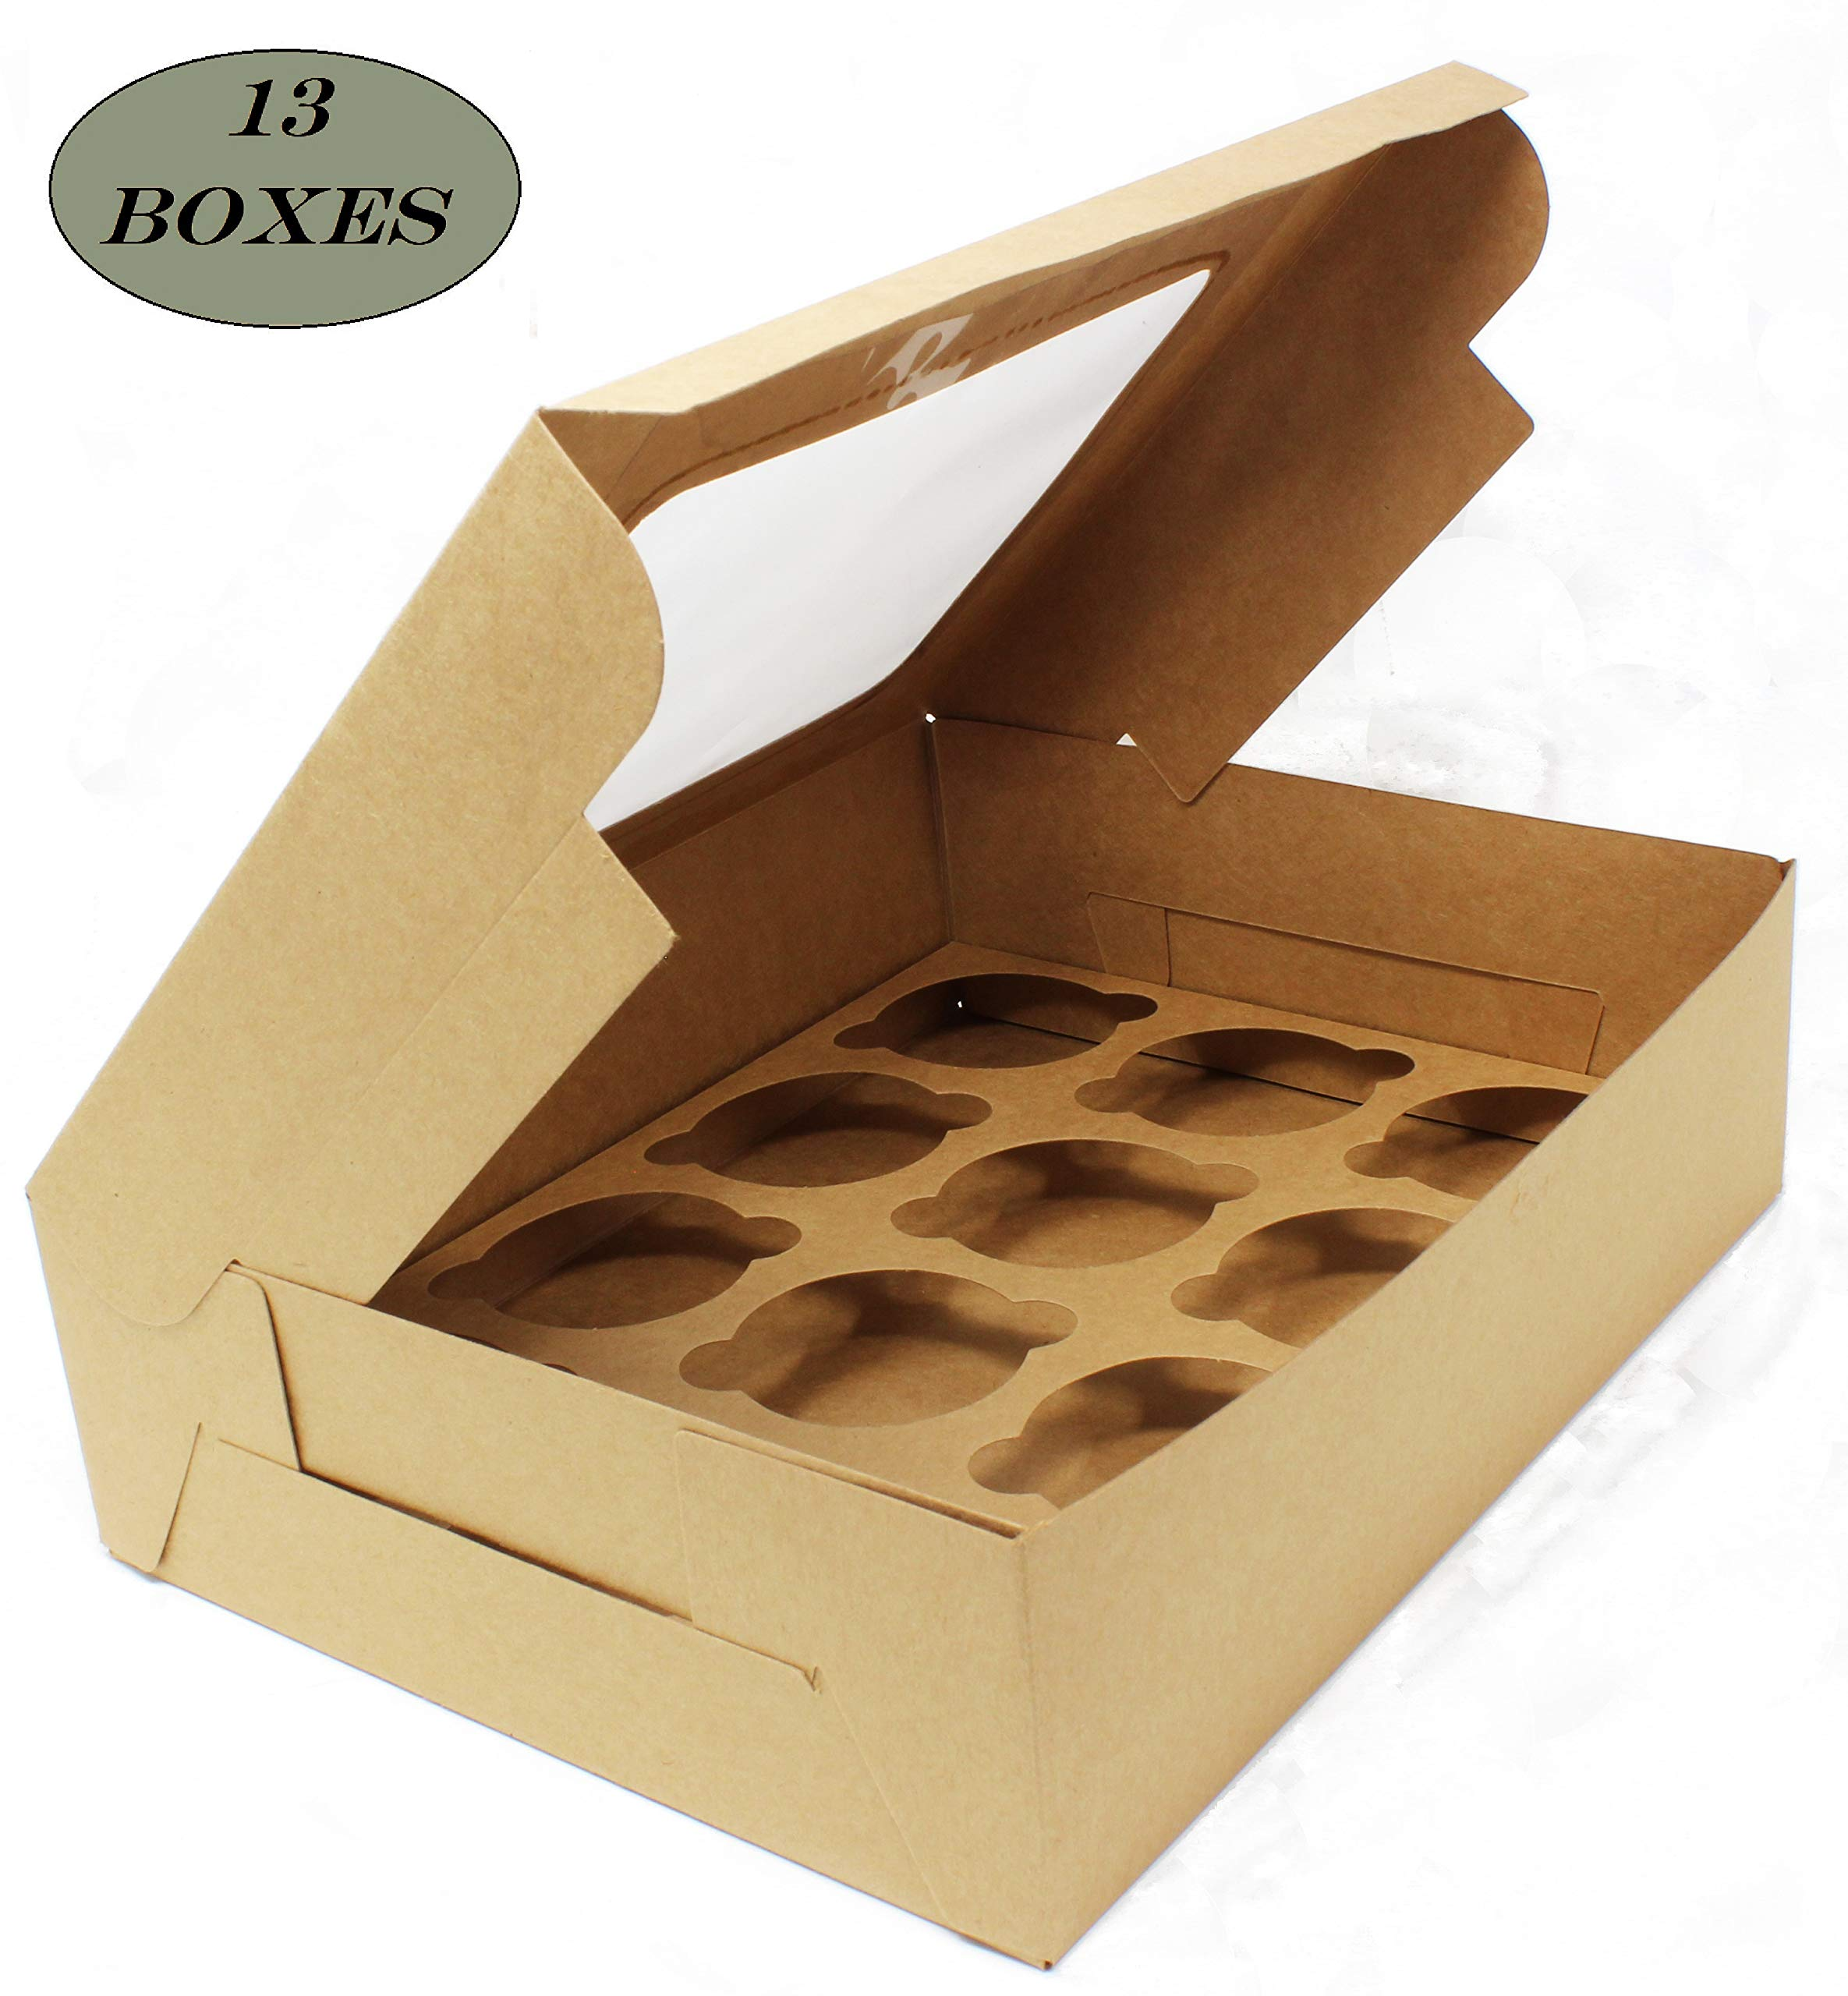 Bakery Boxes with Windows and Inserts for 12 Cupcakes or Muffins; Pastries, Baked Goods, Treats. Set of 13 Kraft Brown Boxes -Take Out Box Containers. Perfect for Any Baker. 12.25'' x 9.5'' x 3.5''